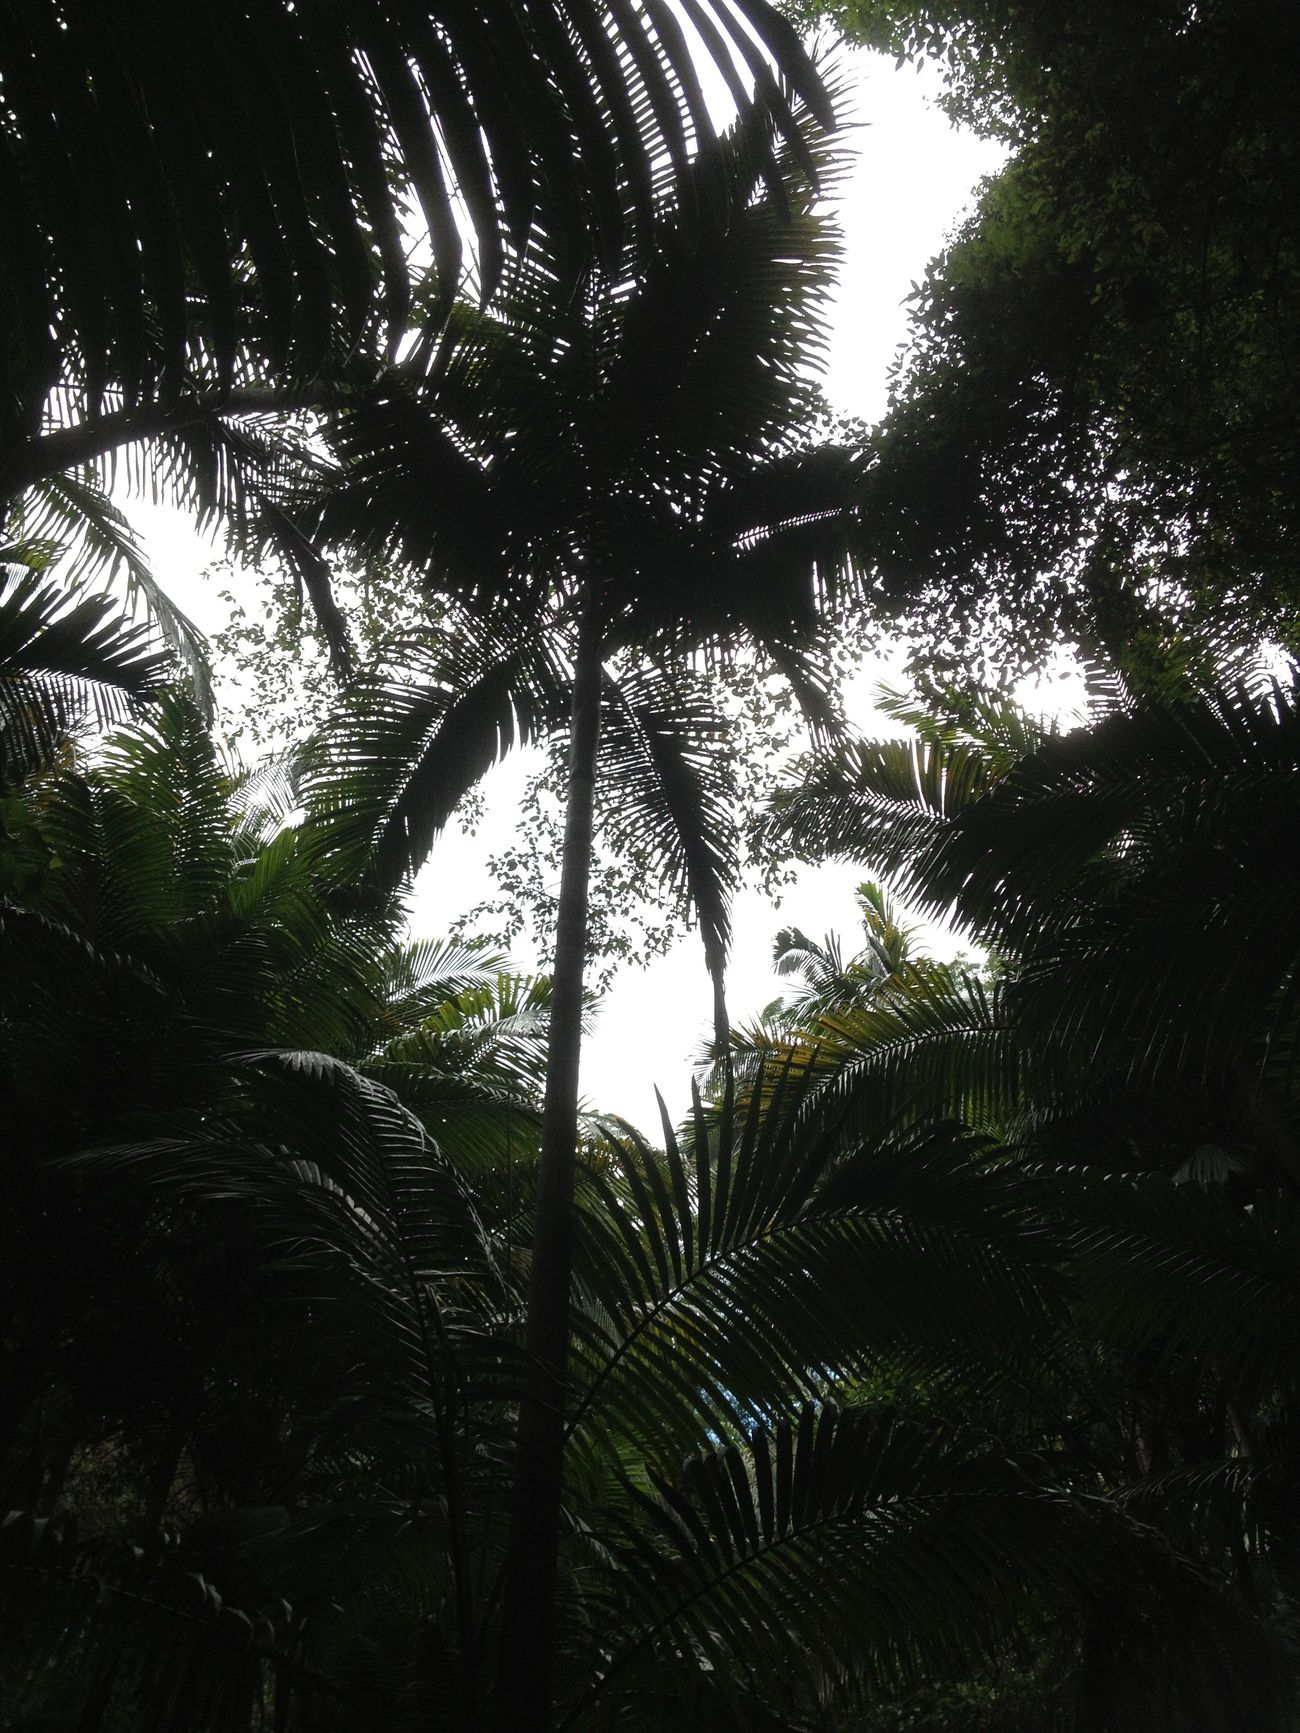 How Do We Build The World? Rainforests Plant Trees Lungs Of The Earth Ecology Is Survival